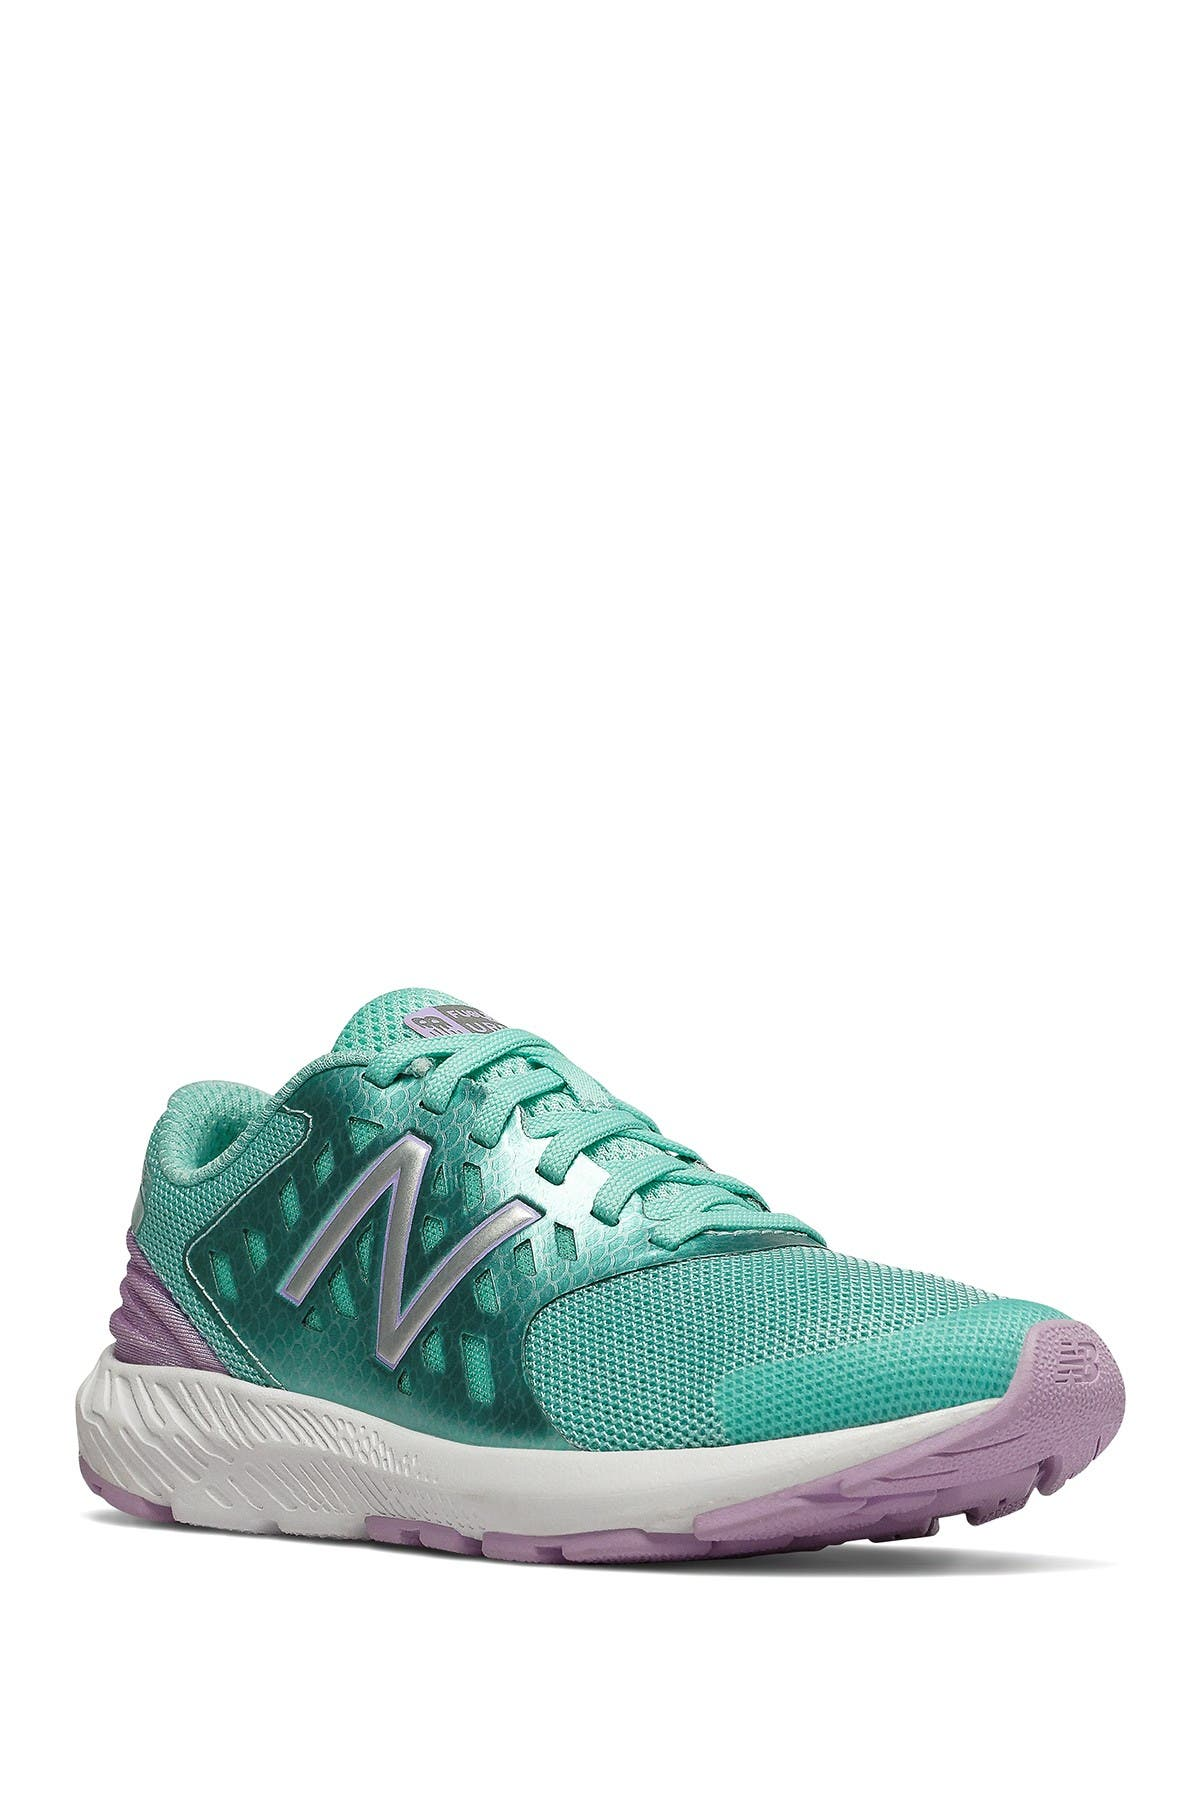 Image of New Balance FuelCore Sneaker